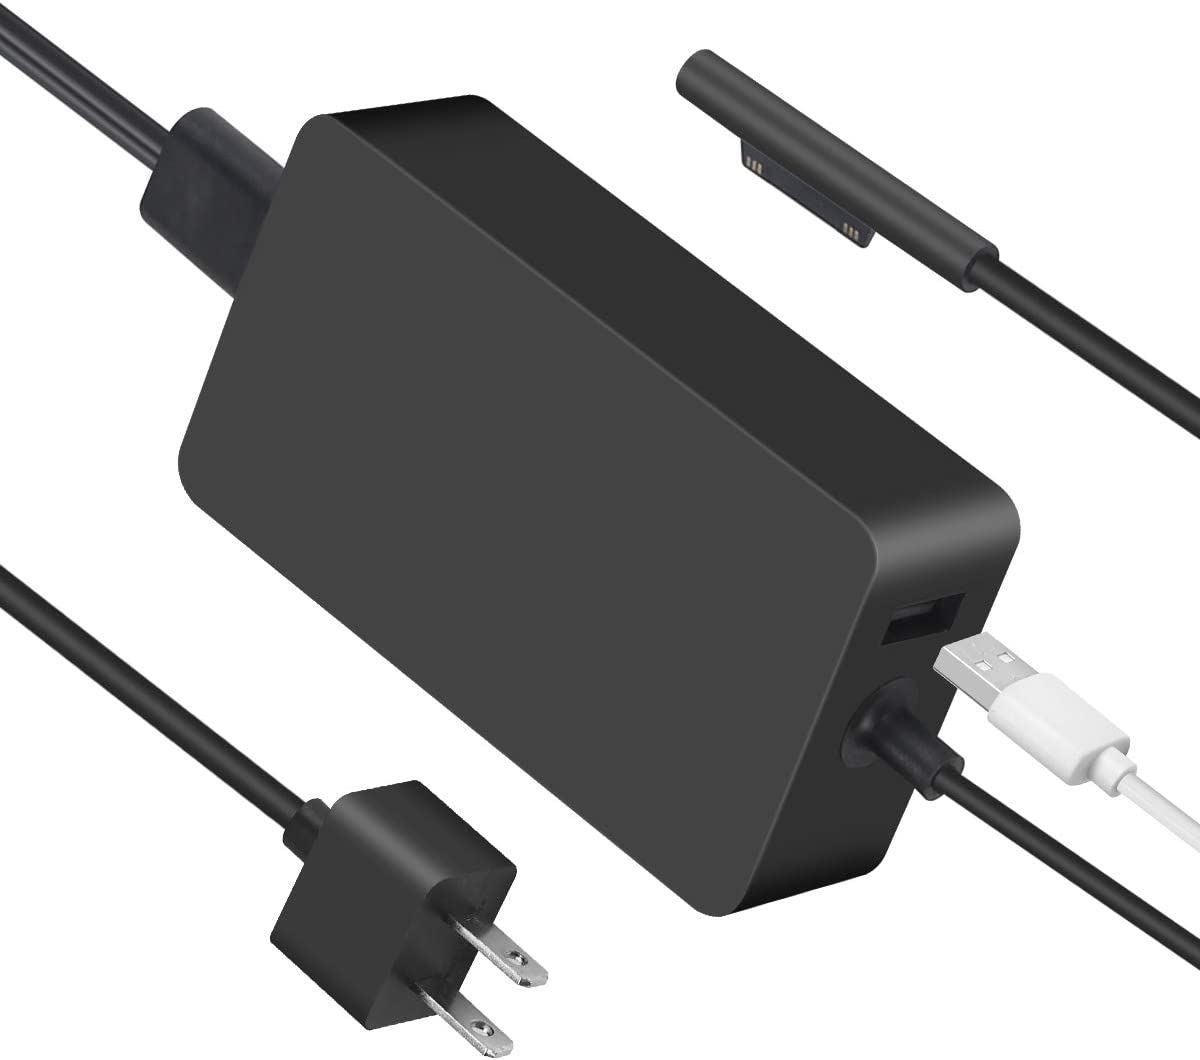 Surface Pro 3 & 4 & 6 Charger Power Adapter, 44w Surface Pro Charger Supply Compatible Microsoft Surface Pro 6 Pro 5 Pro 4 Surface Laptop 2 & Surface Go with 5V 1A USB Charging Port